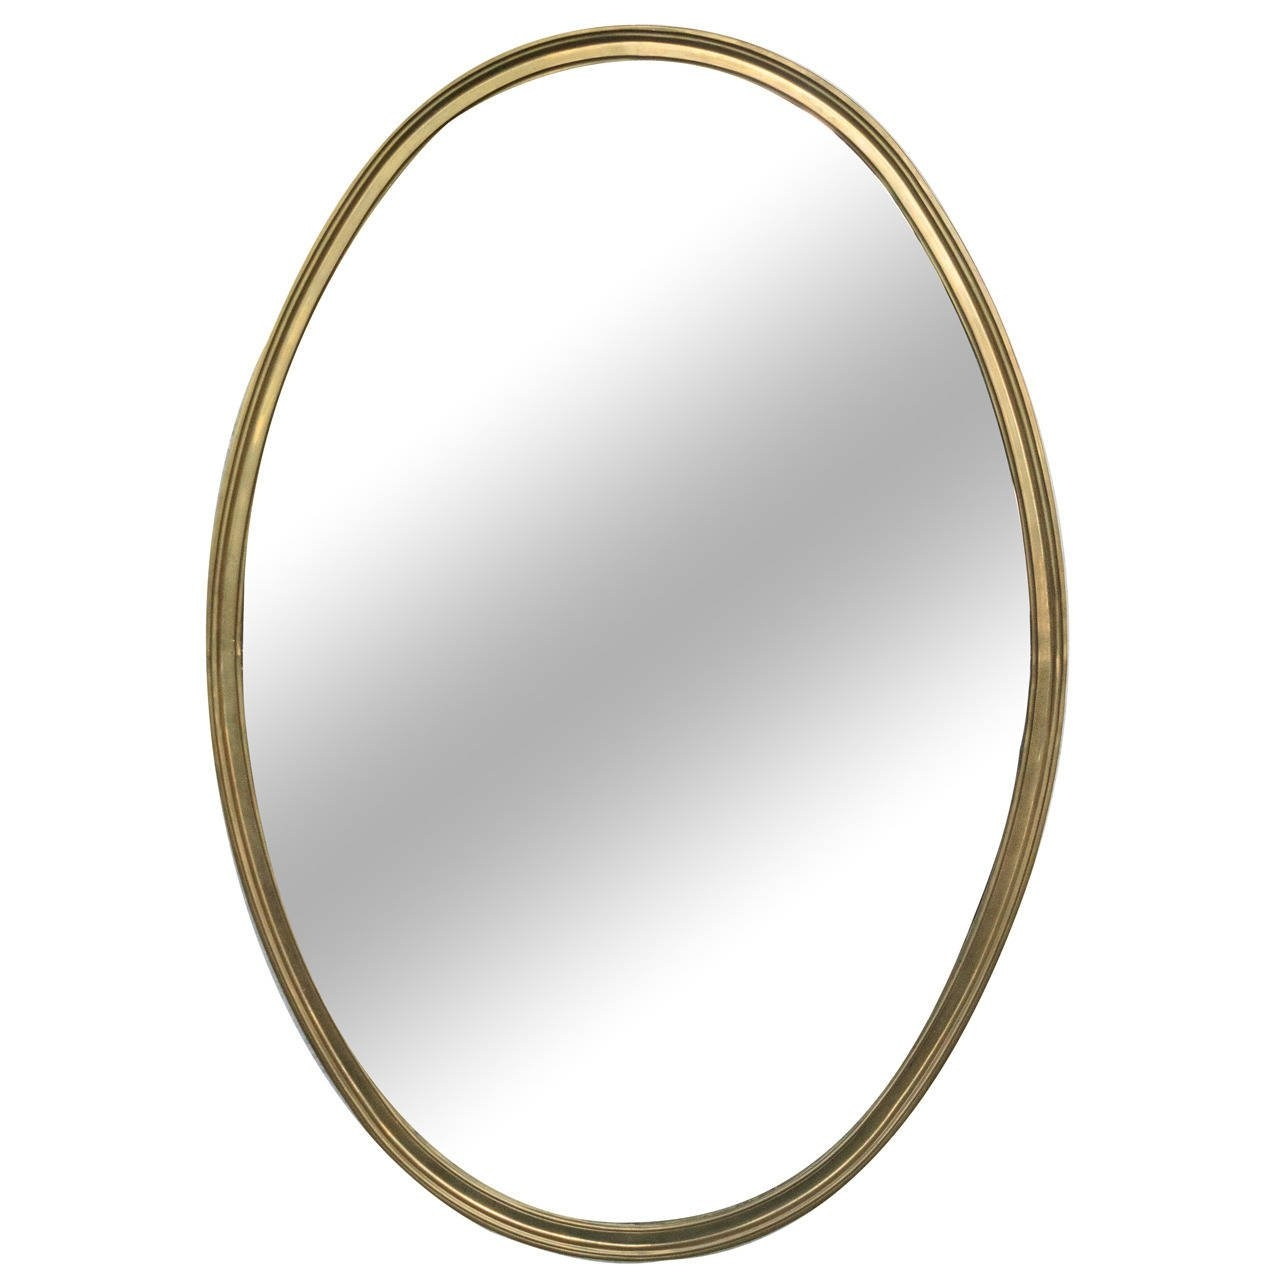 1950s French Brass Oval Shaped Mirror At 1stdibs Within Oval French Mirror (Image 2 of 15)